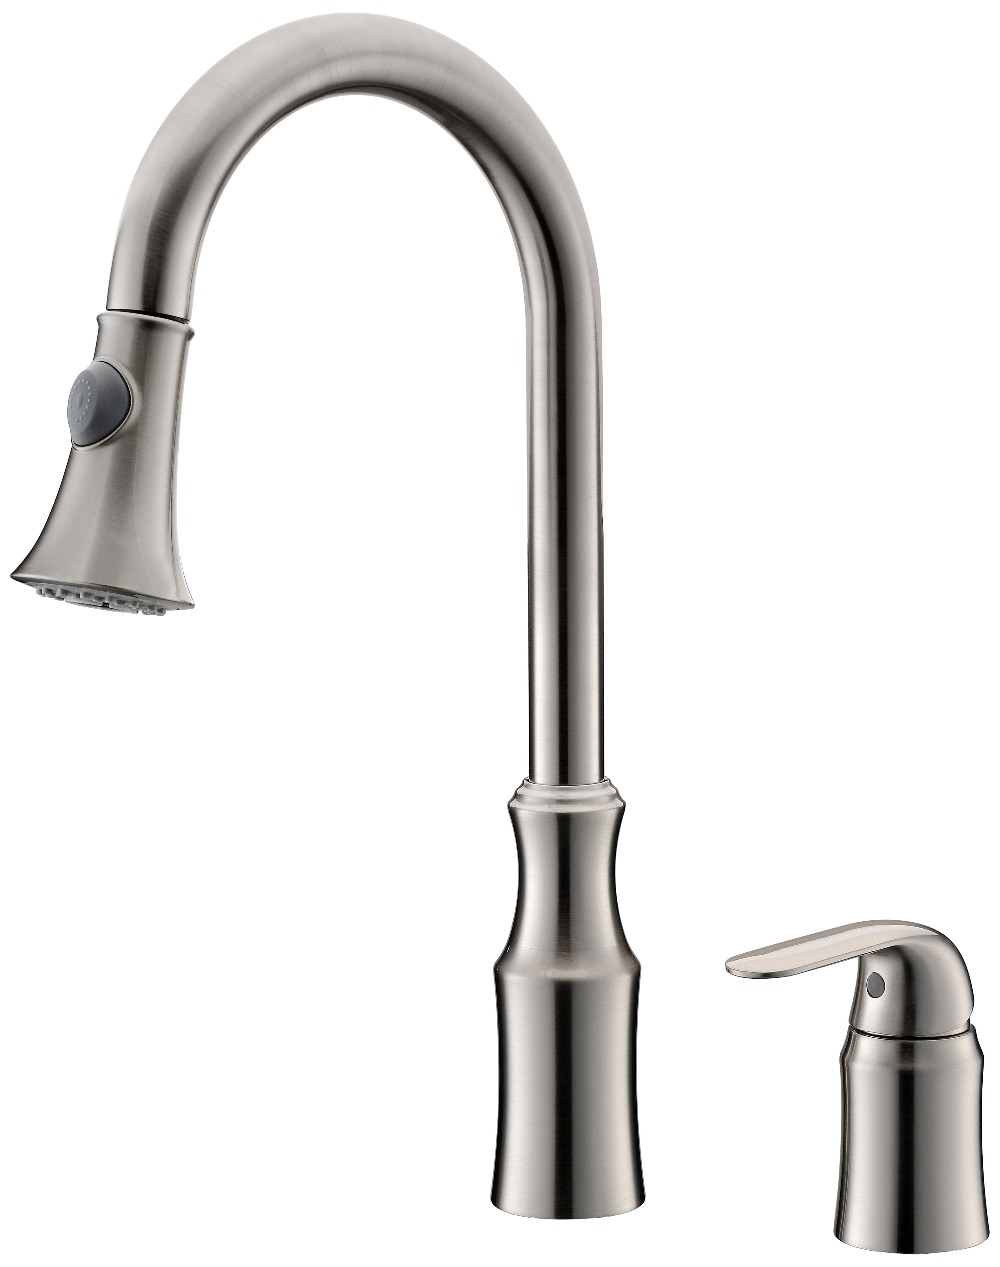 brushed nickel single handle kitchen faucet free ship new brushed nickel single handle pull down kitchen faucet mixer tap widespread 2 holes 3464